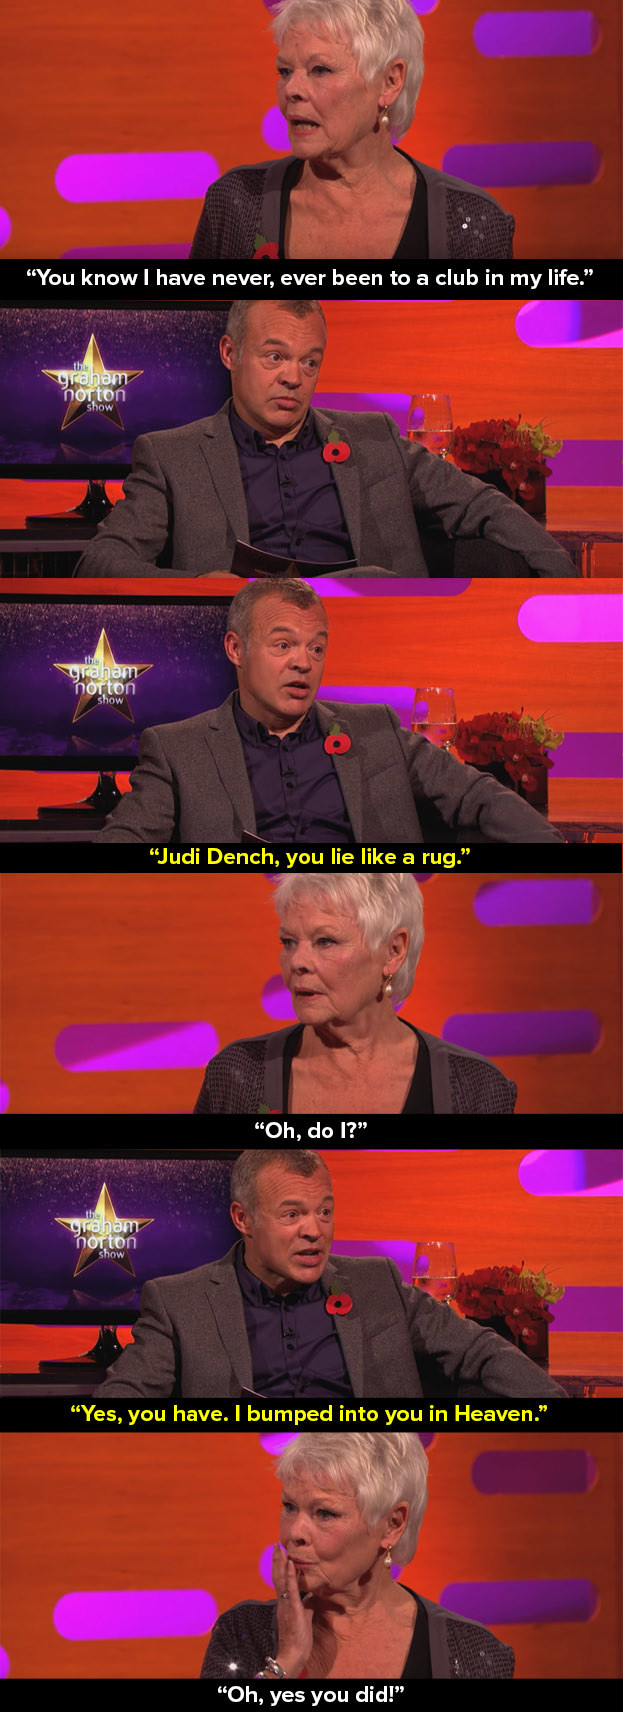 And when Graham called out Dame Judi Dench.